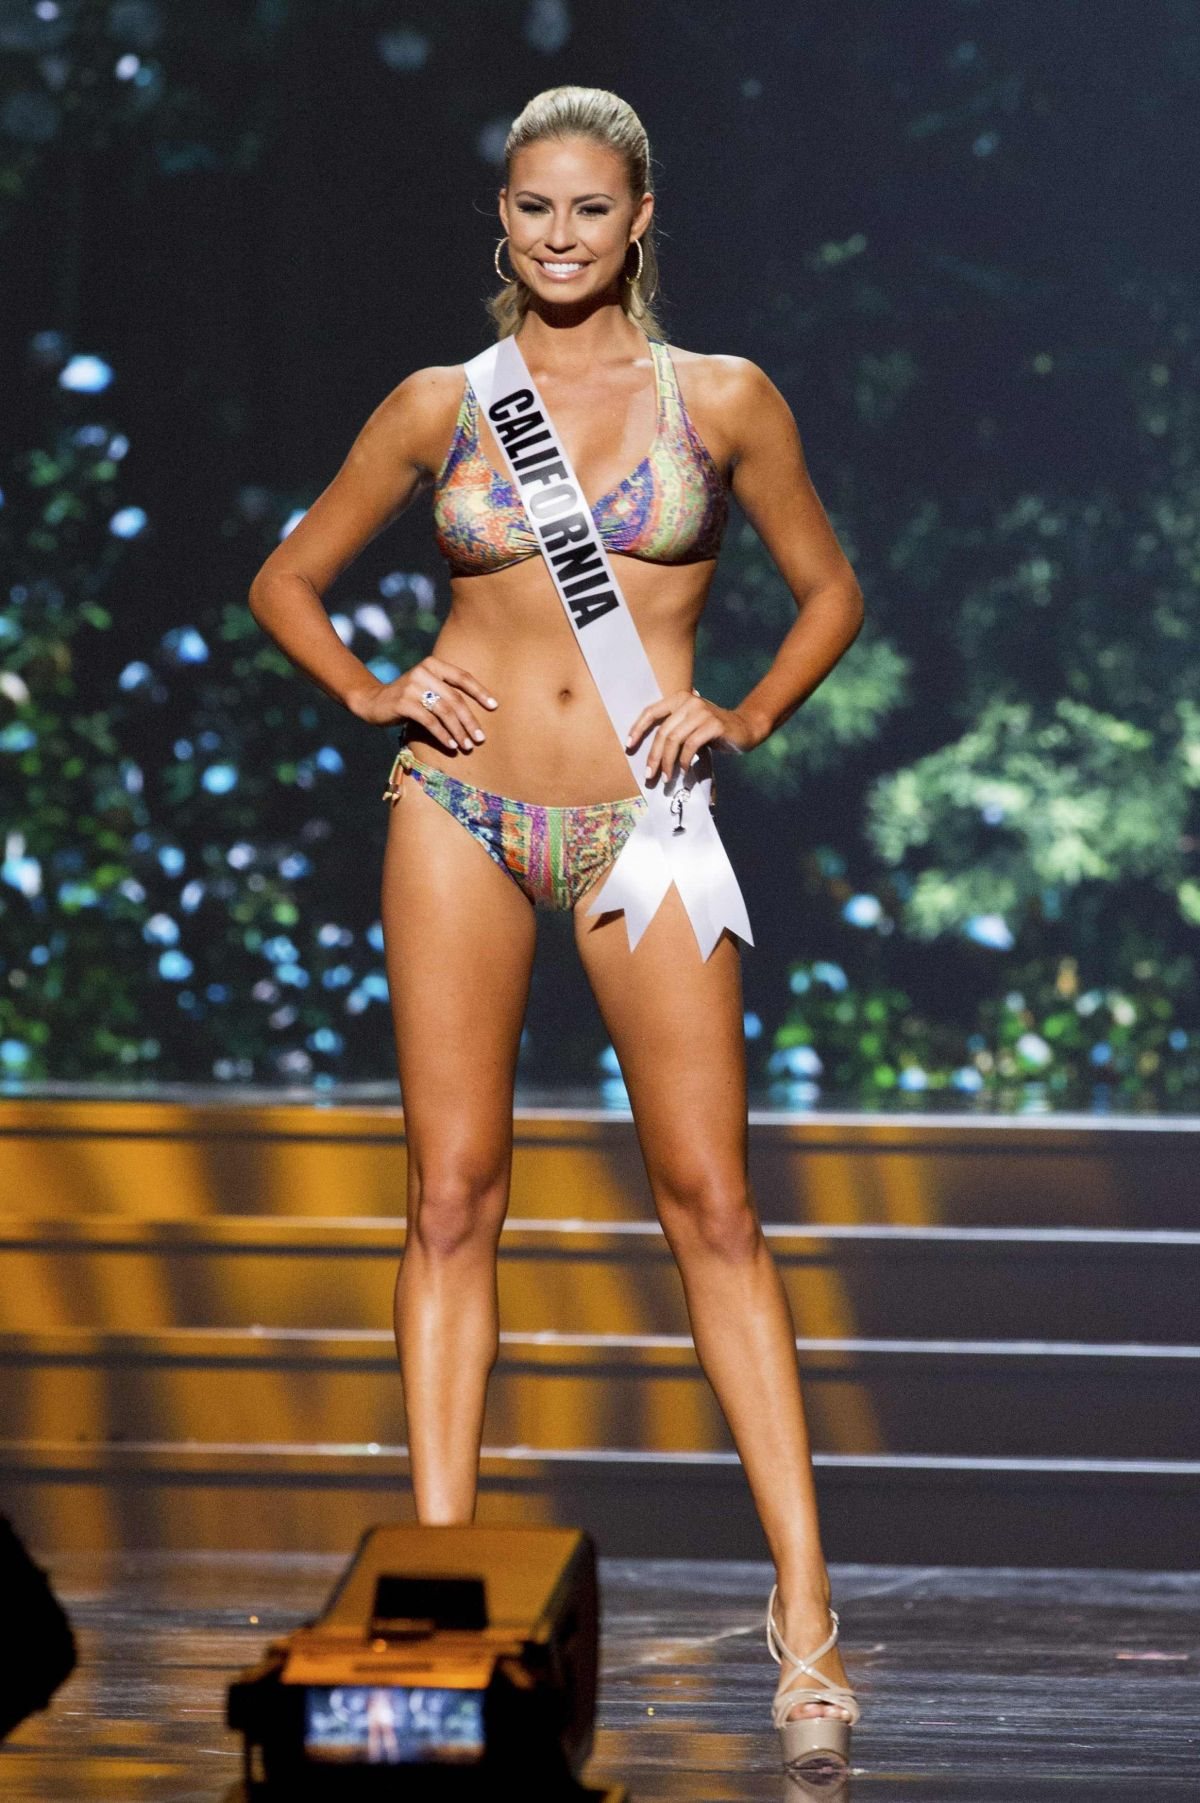 SACCANDRA KUNZE at Miss USA 2014 Preliminary Competition